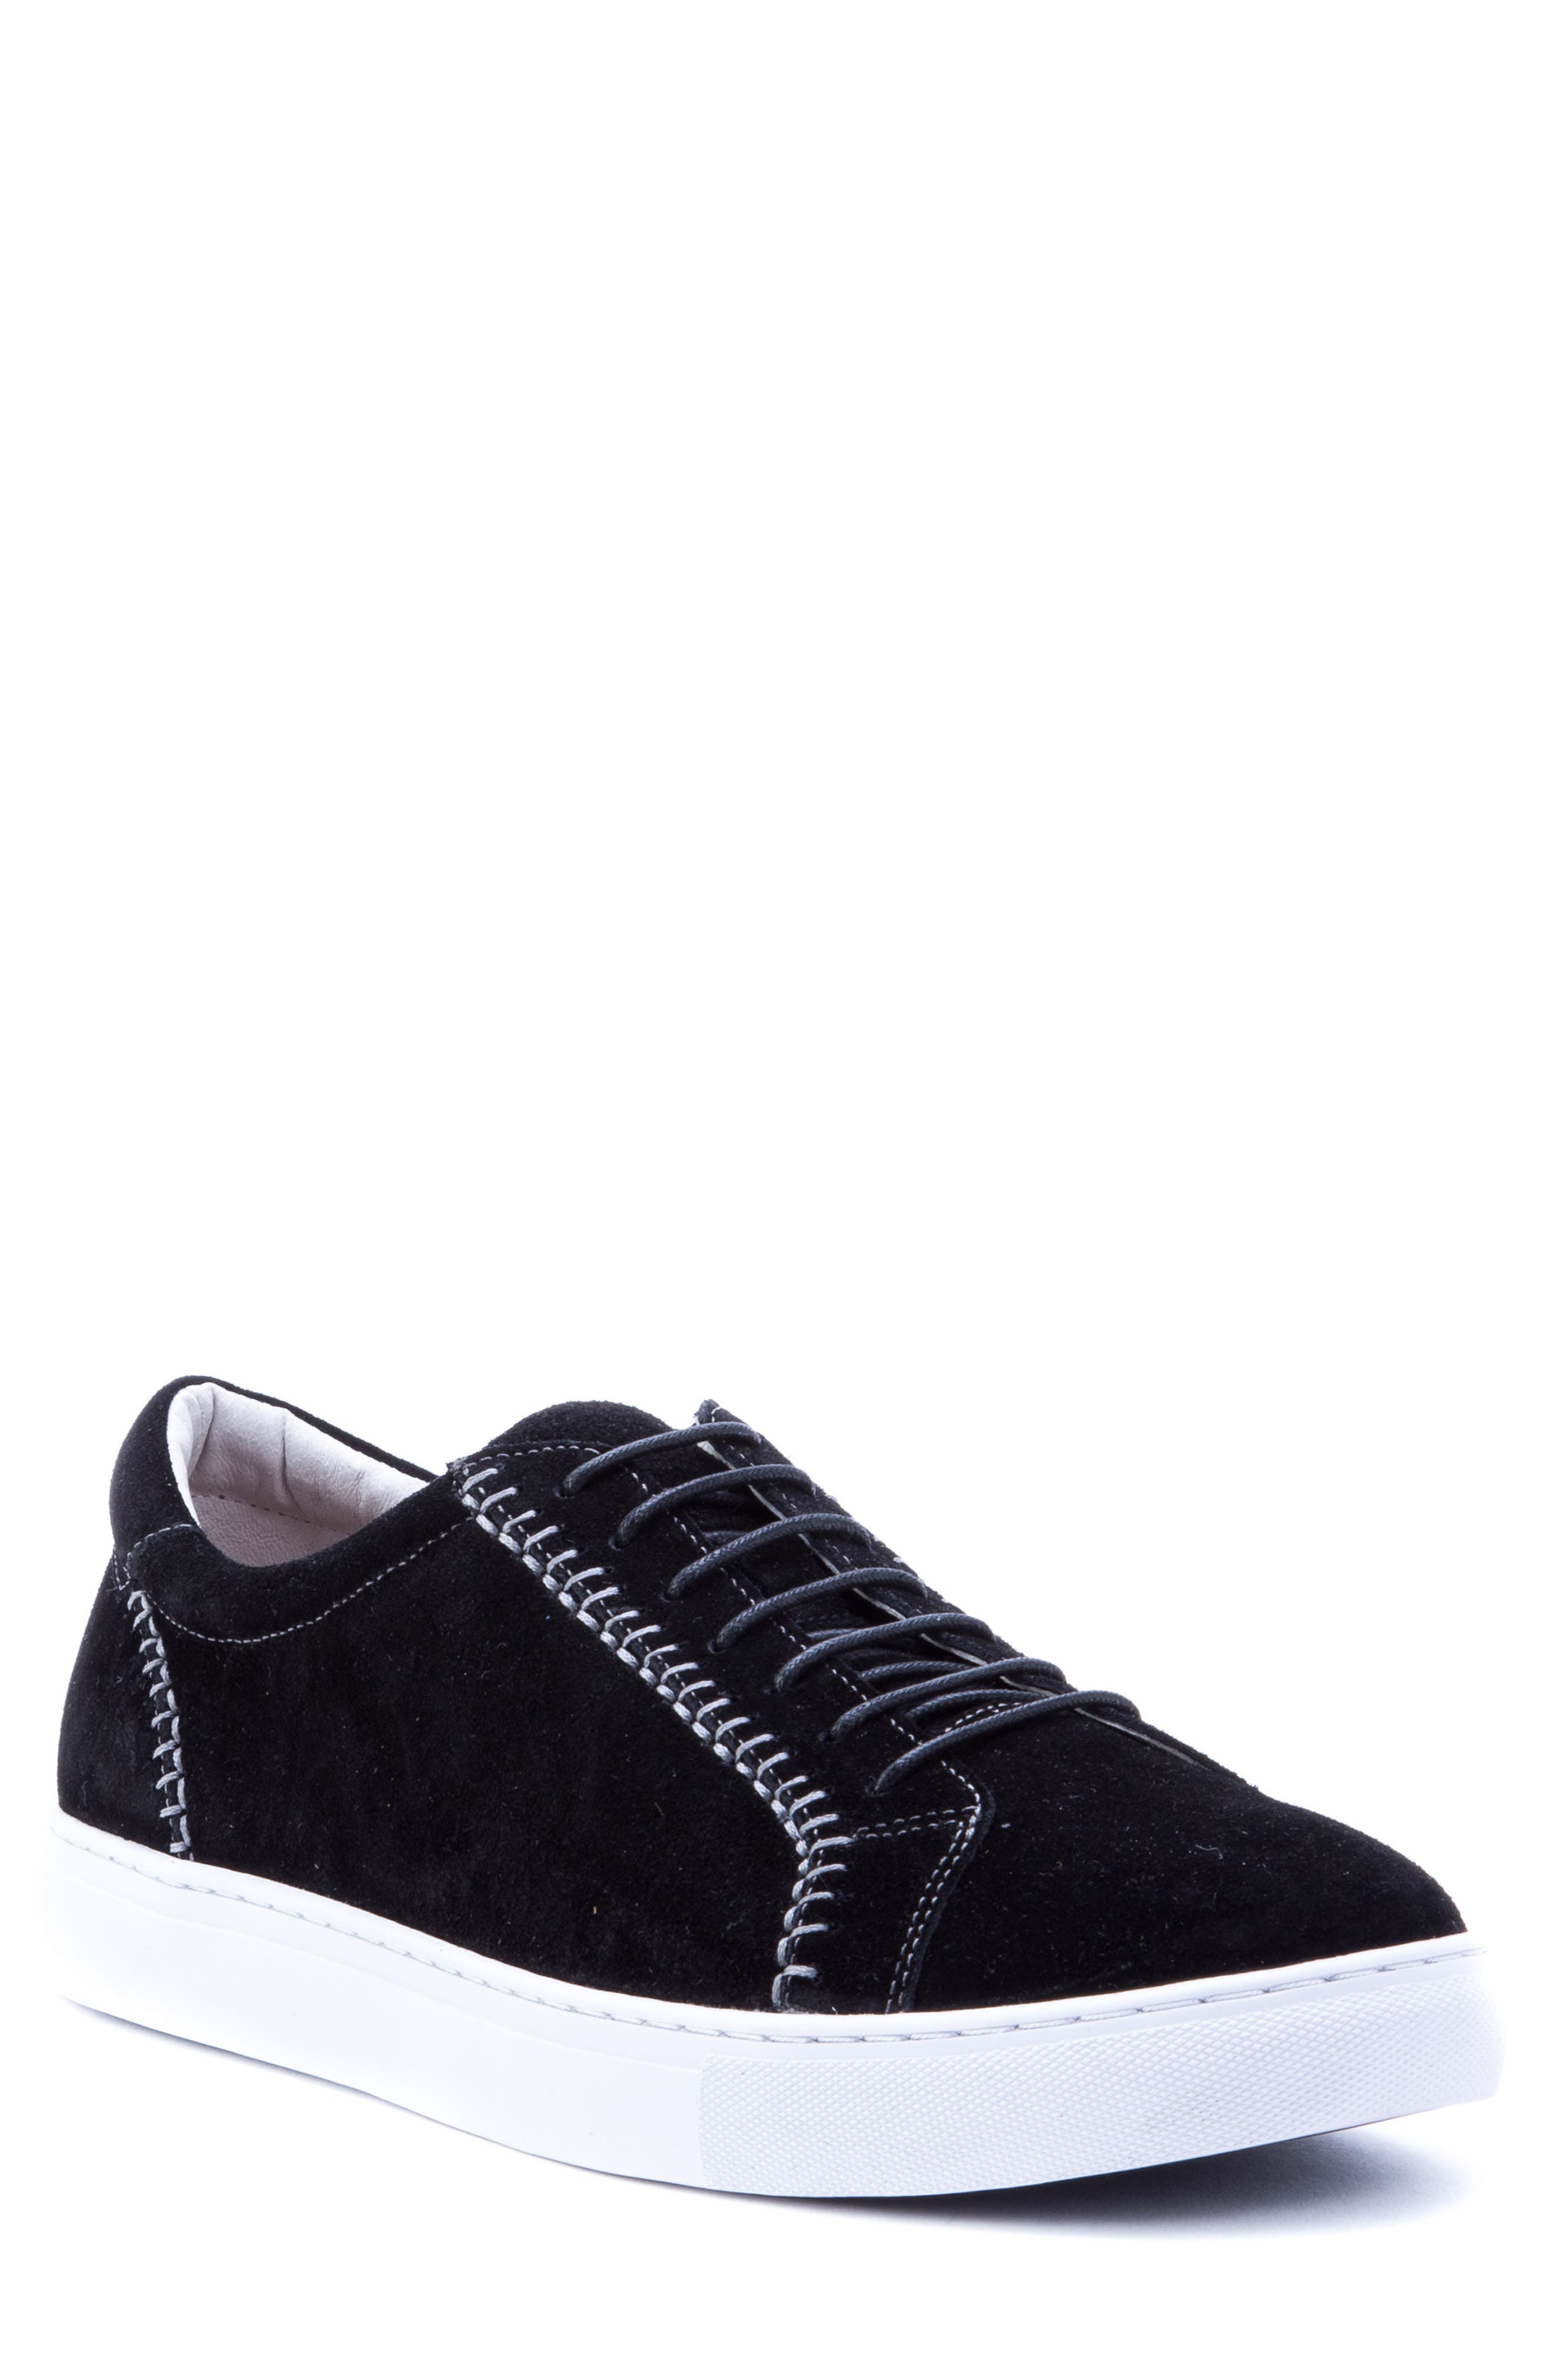 Calle Low Top Sneaker,                         Main,                         color, 001